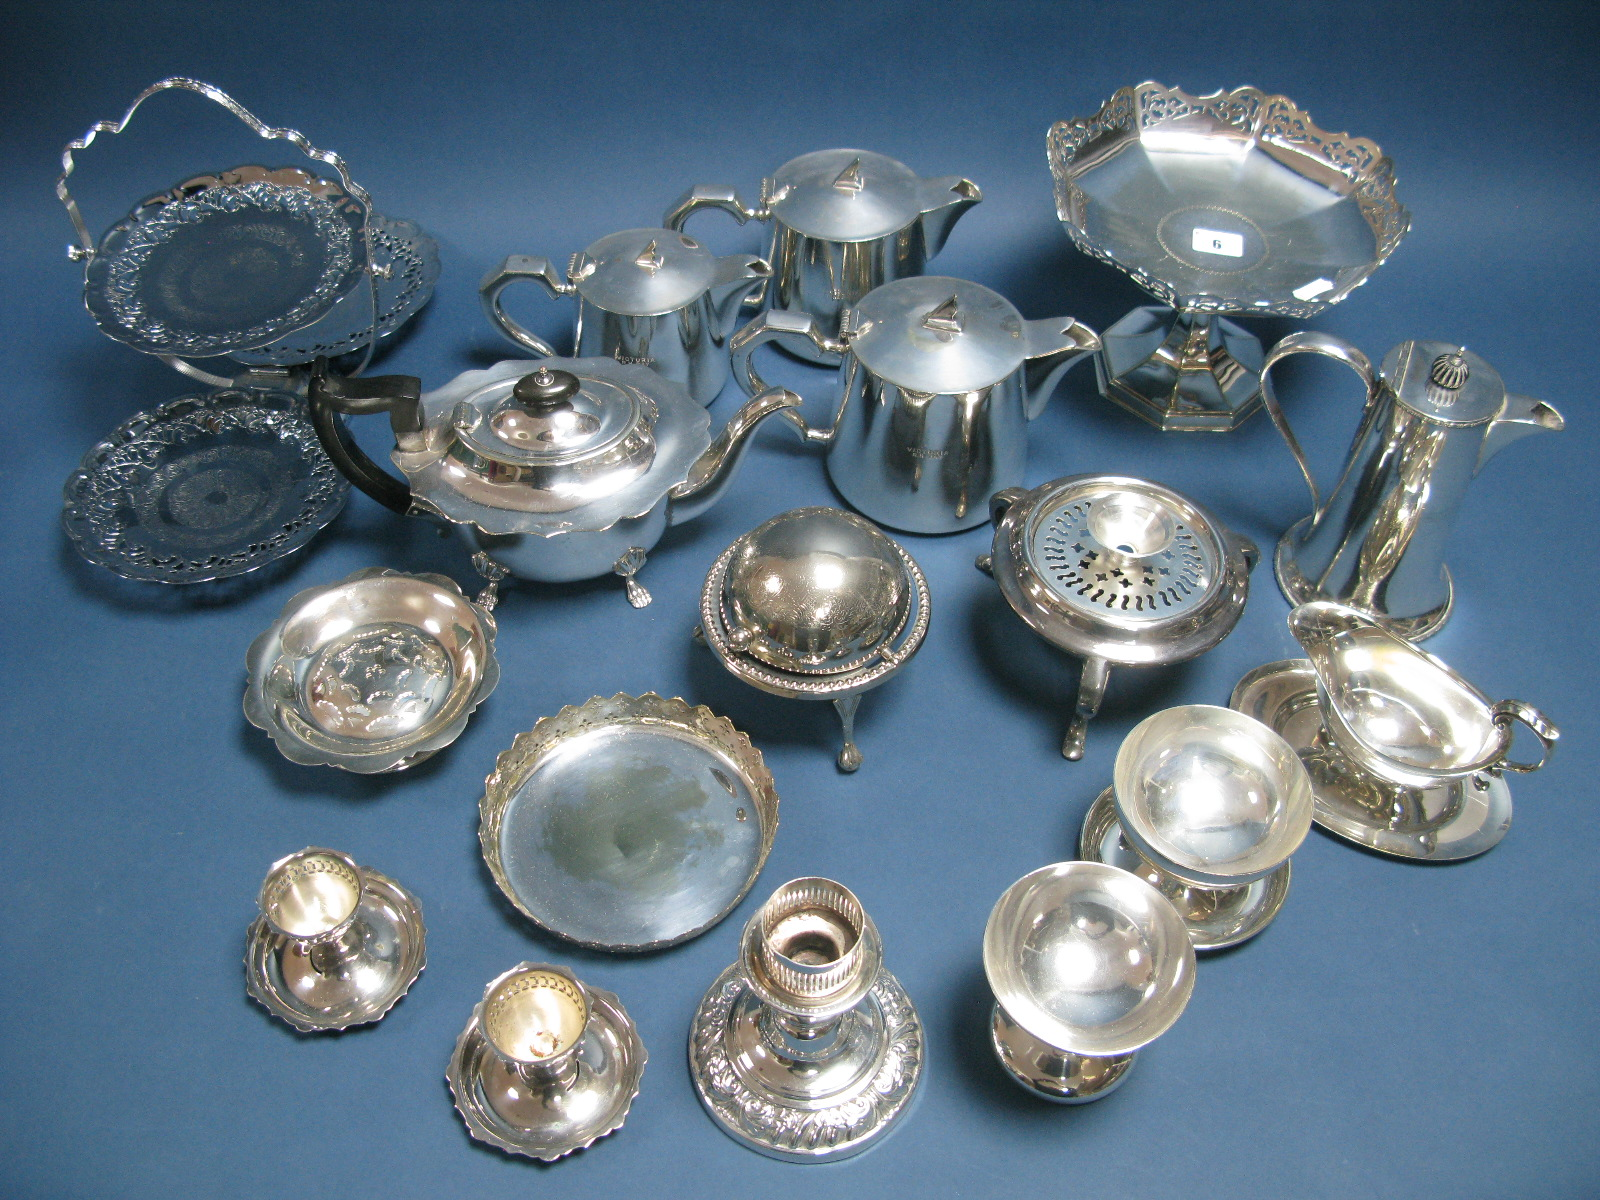 Lot 6 - A Mixed lot of Assorted Plated Ware, including decorative folding cake stand, tea wares, pedestal